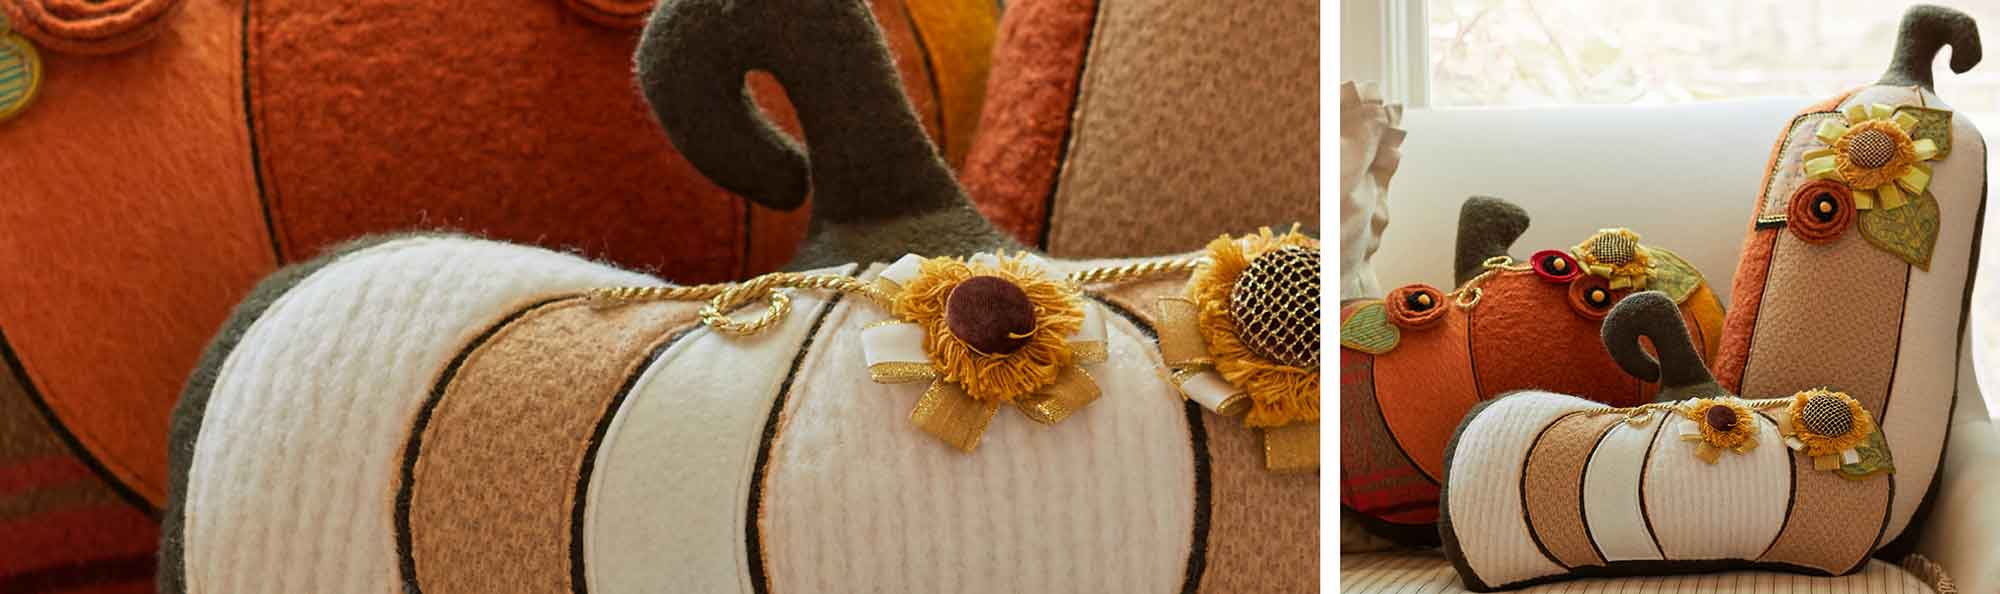 Pillows on a chair that are pumpkins and squash made to look like a pumpkin patch